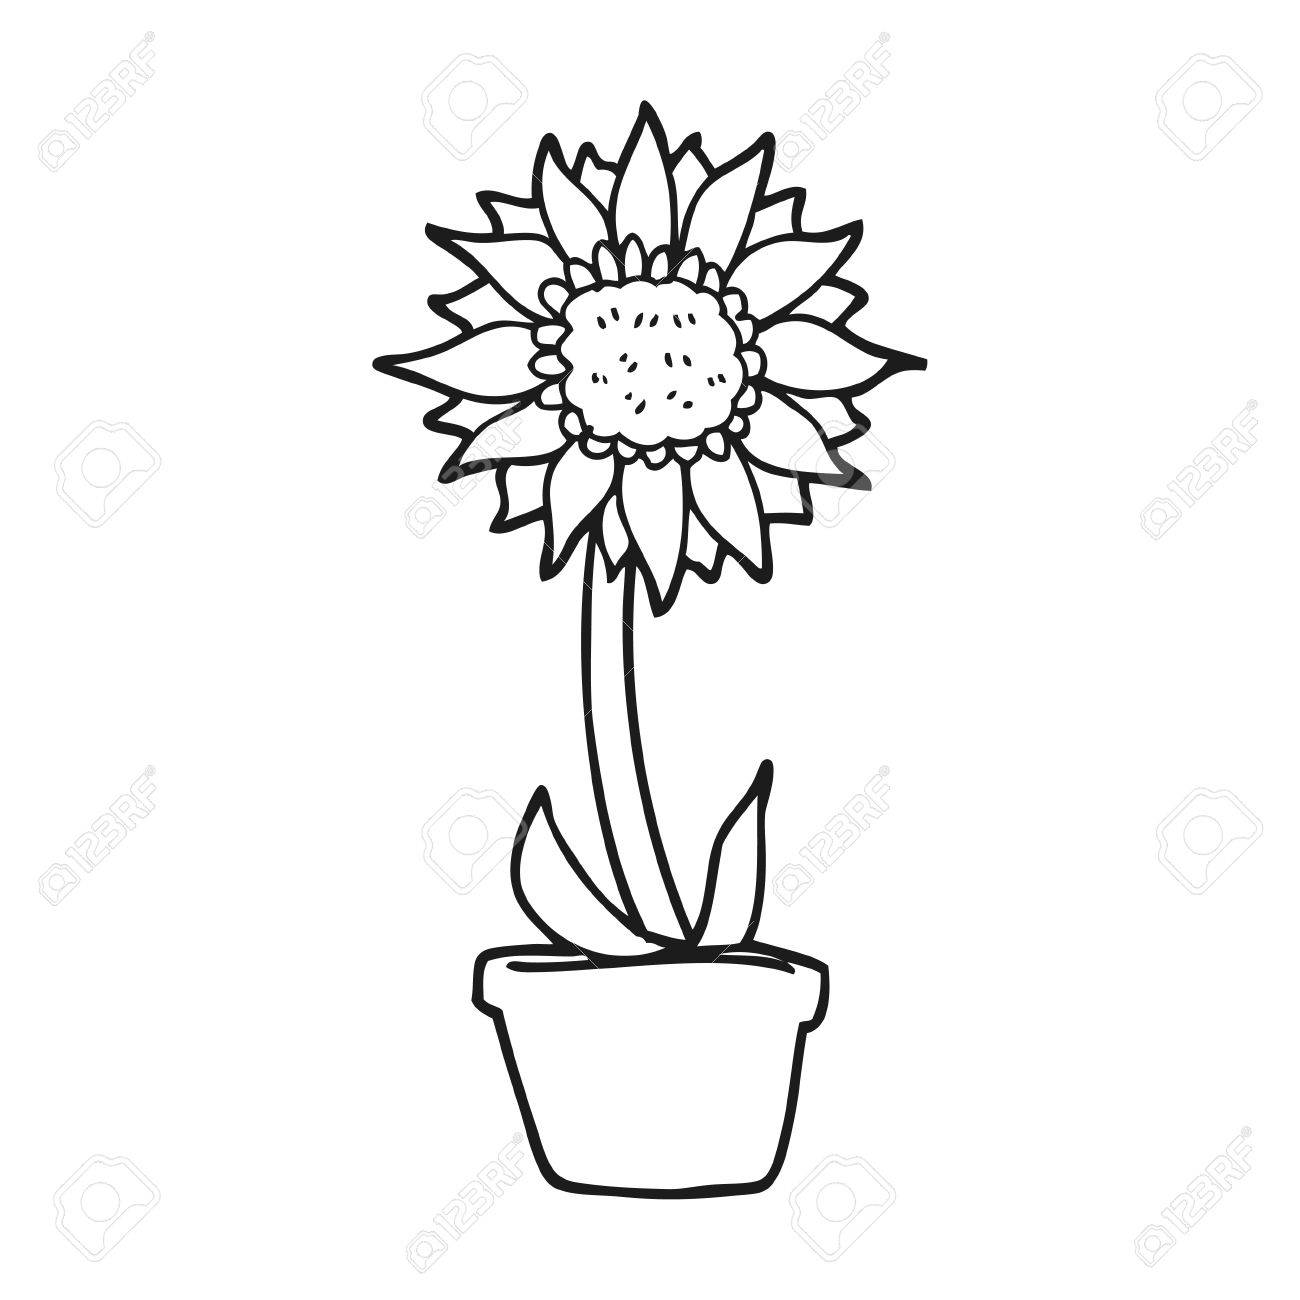 Freehand Drawn Black And White Cartoon Sunflower Royalty Free